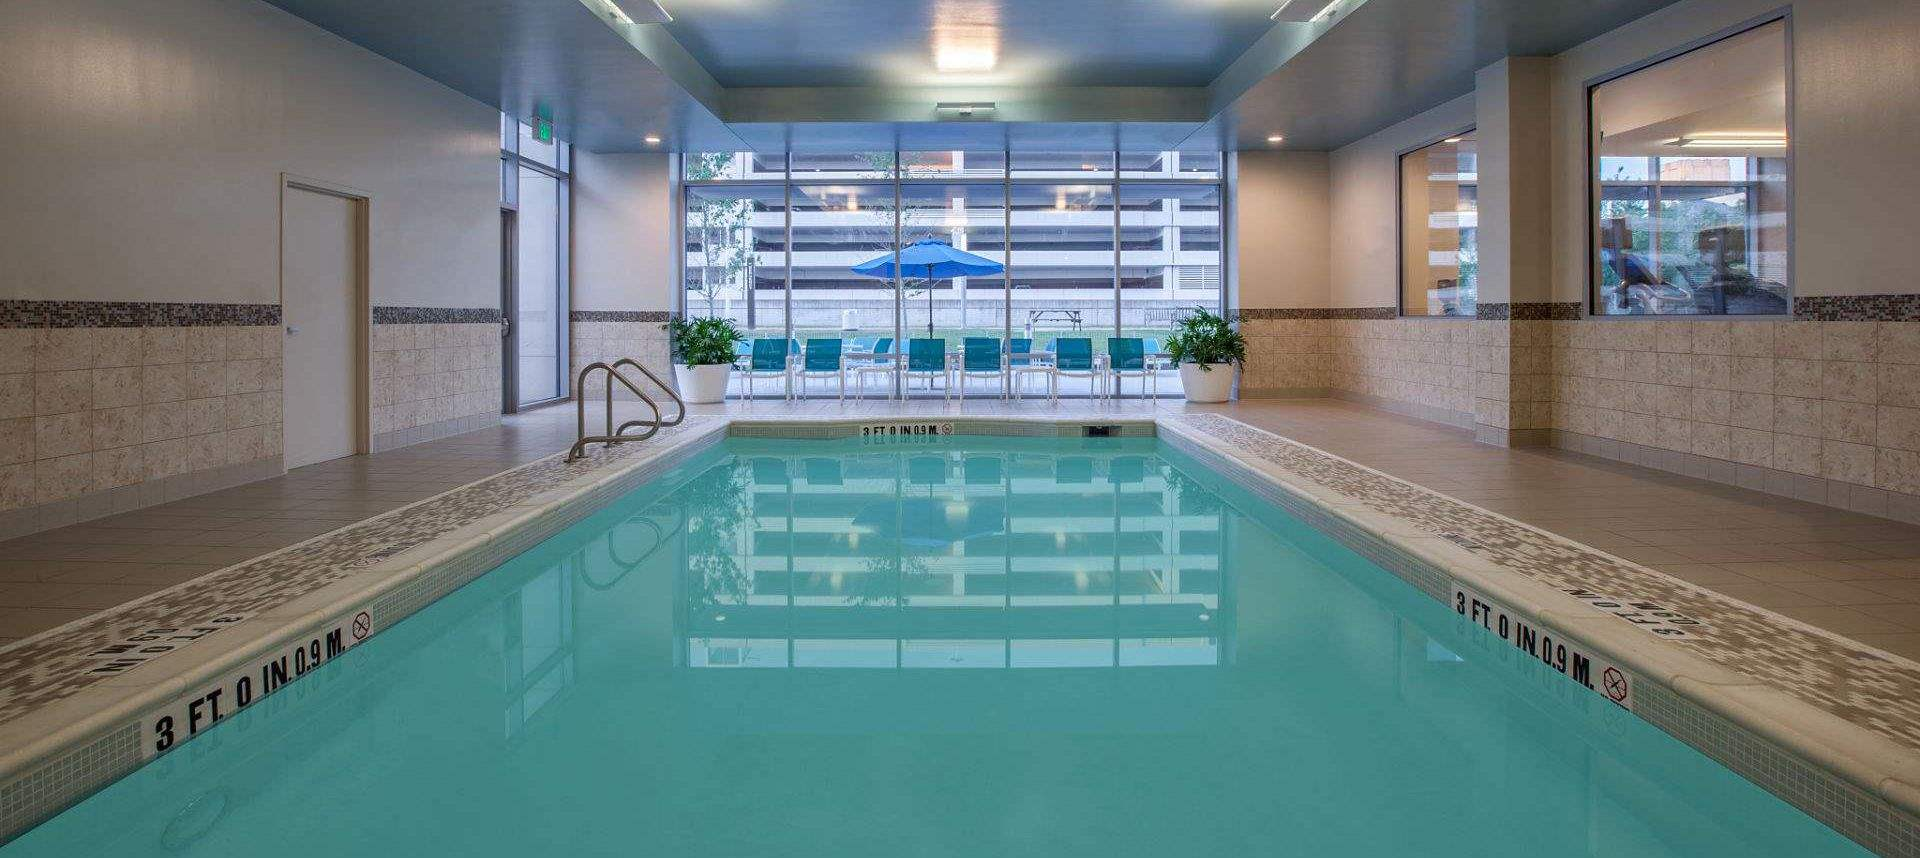 Amenities in Holiday Inn Cleveland Clinic, Ohio